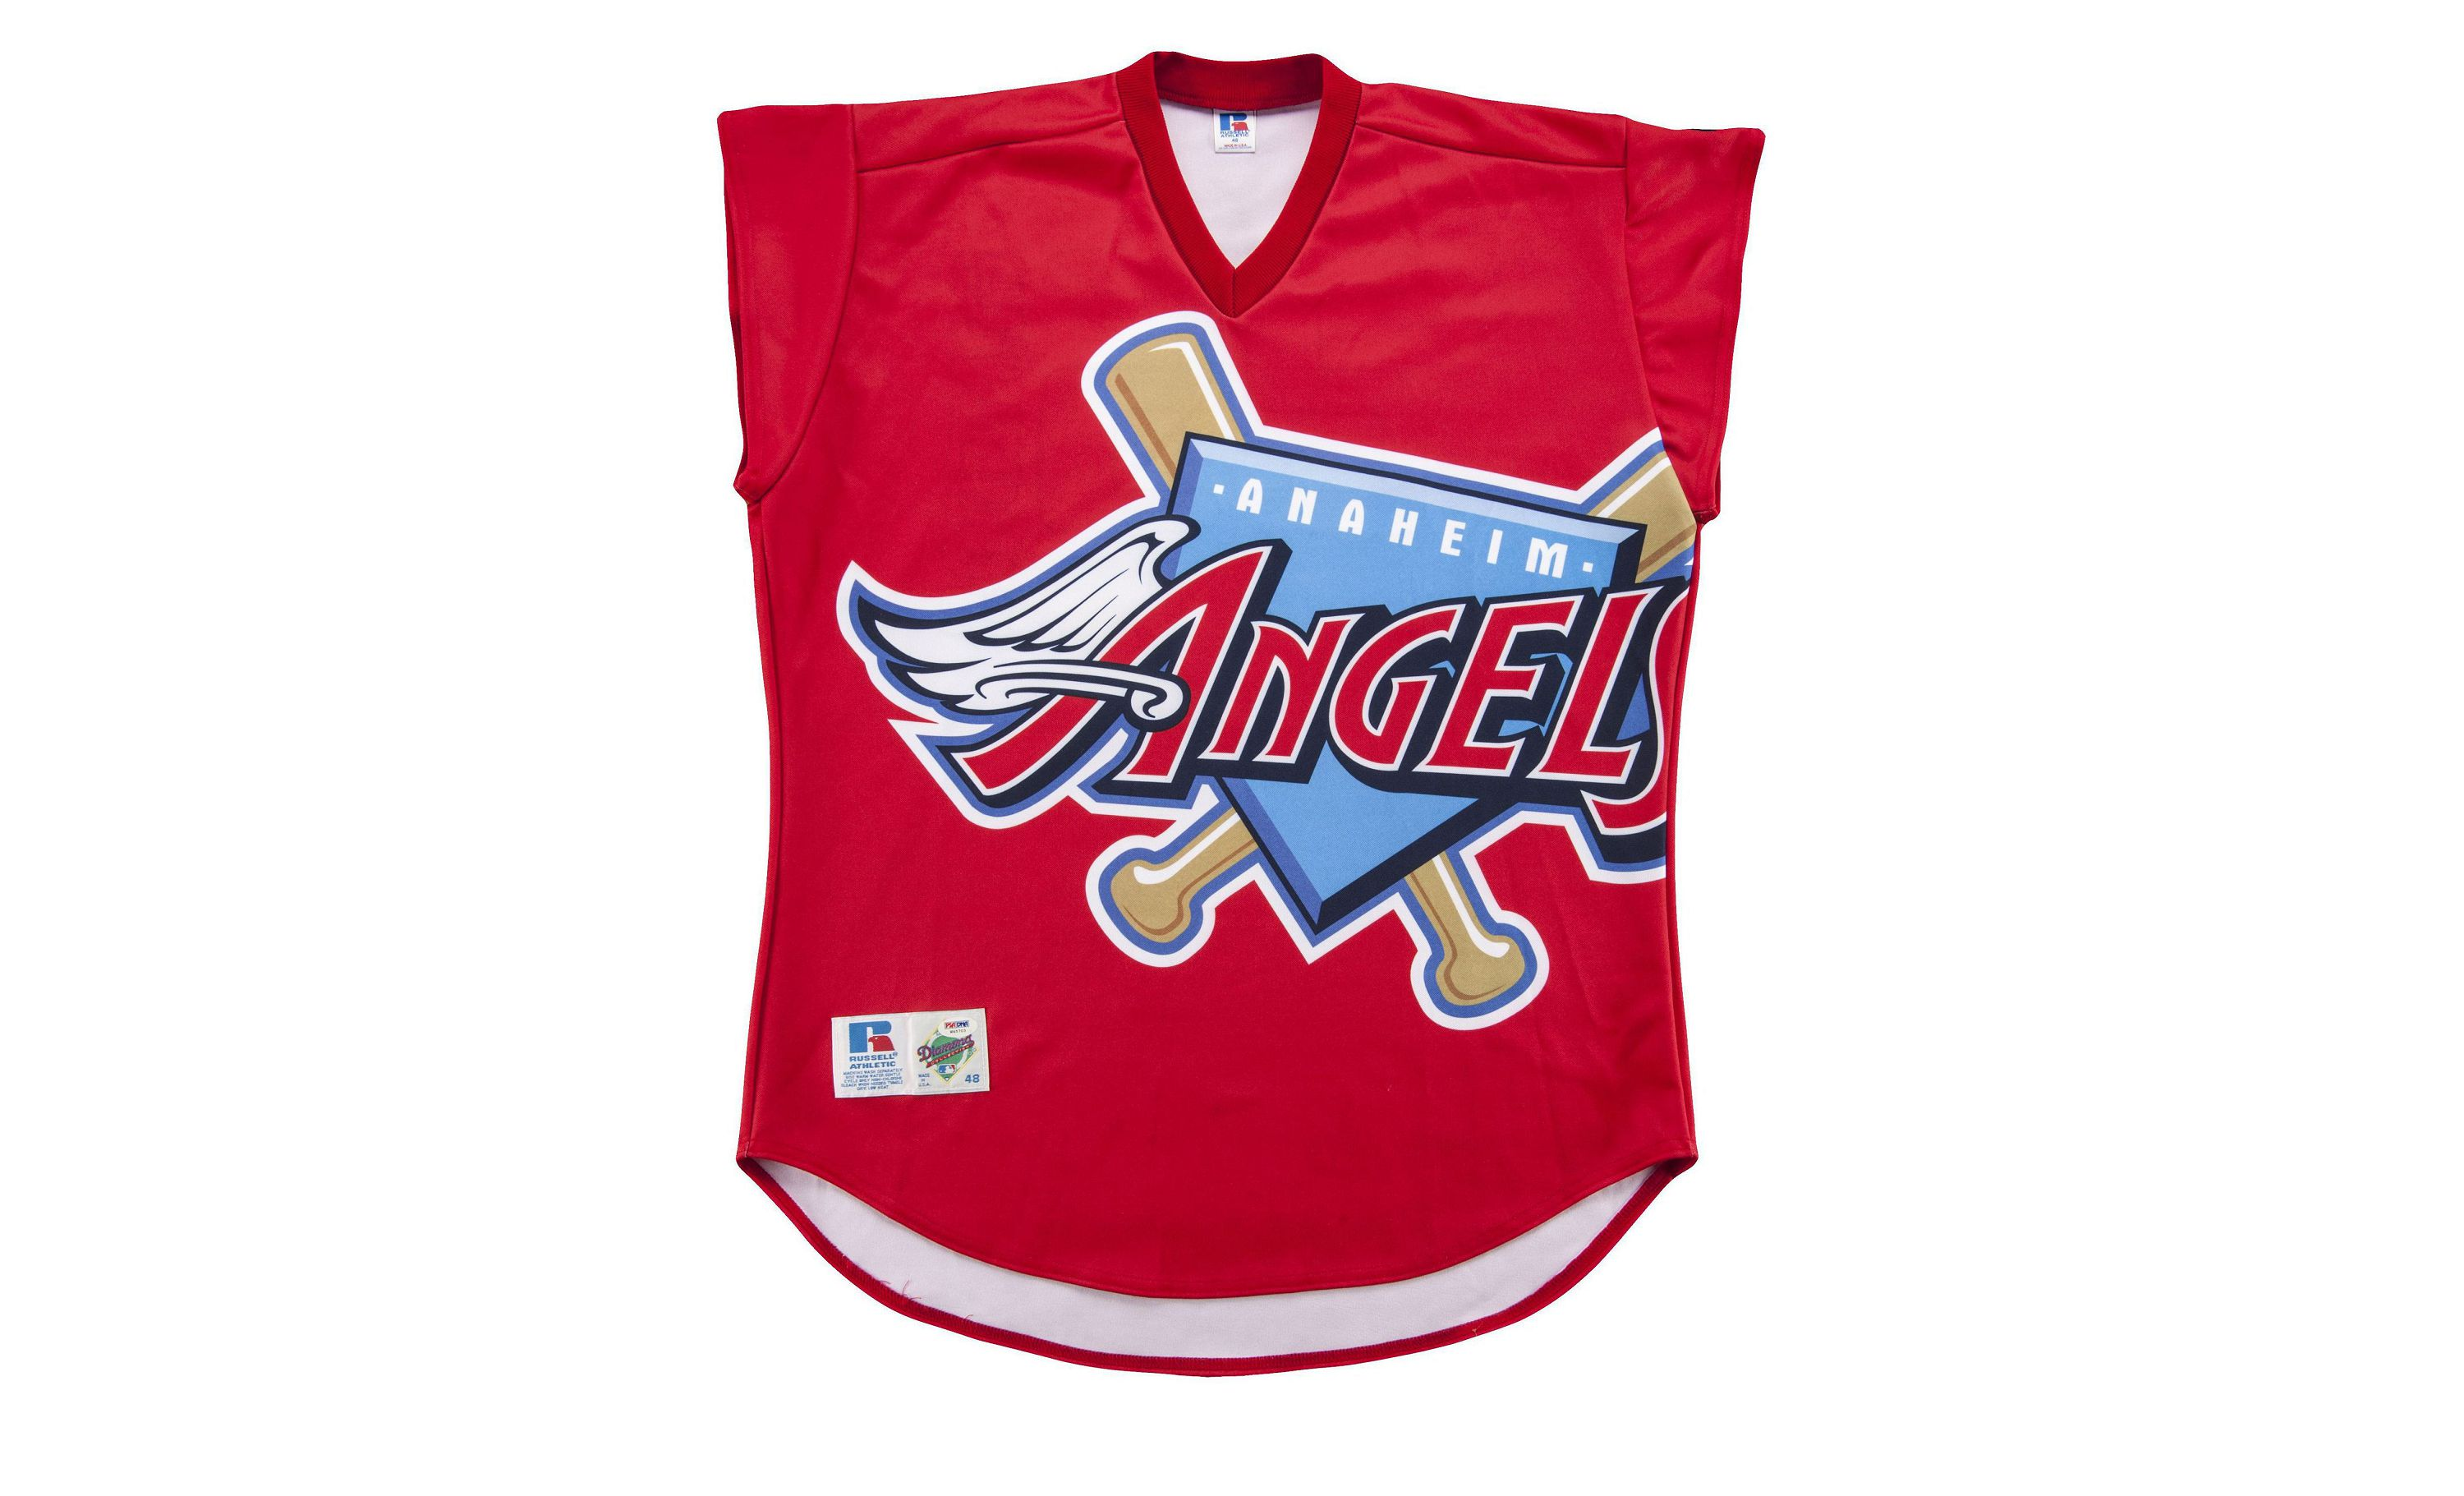 Anaheim Angels Wallpapers